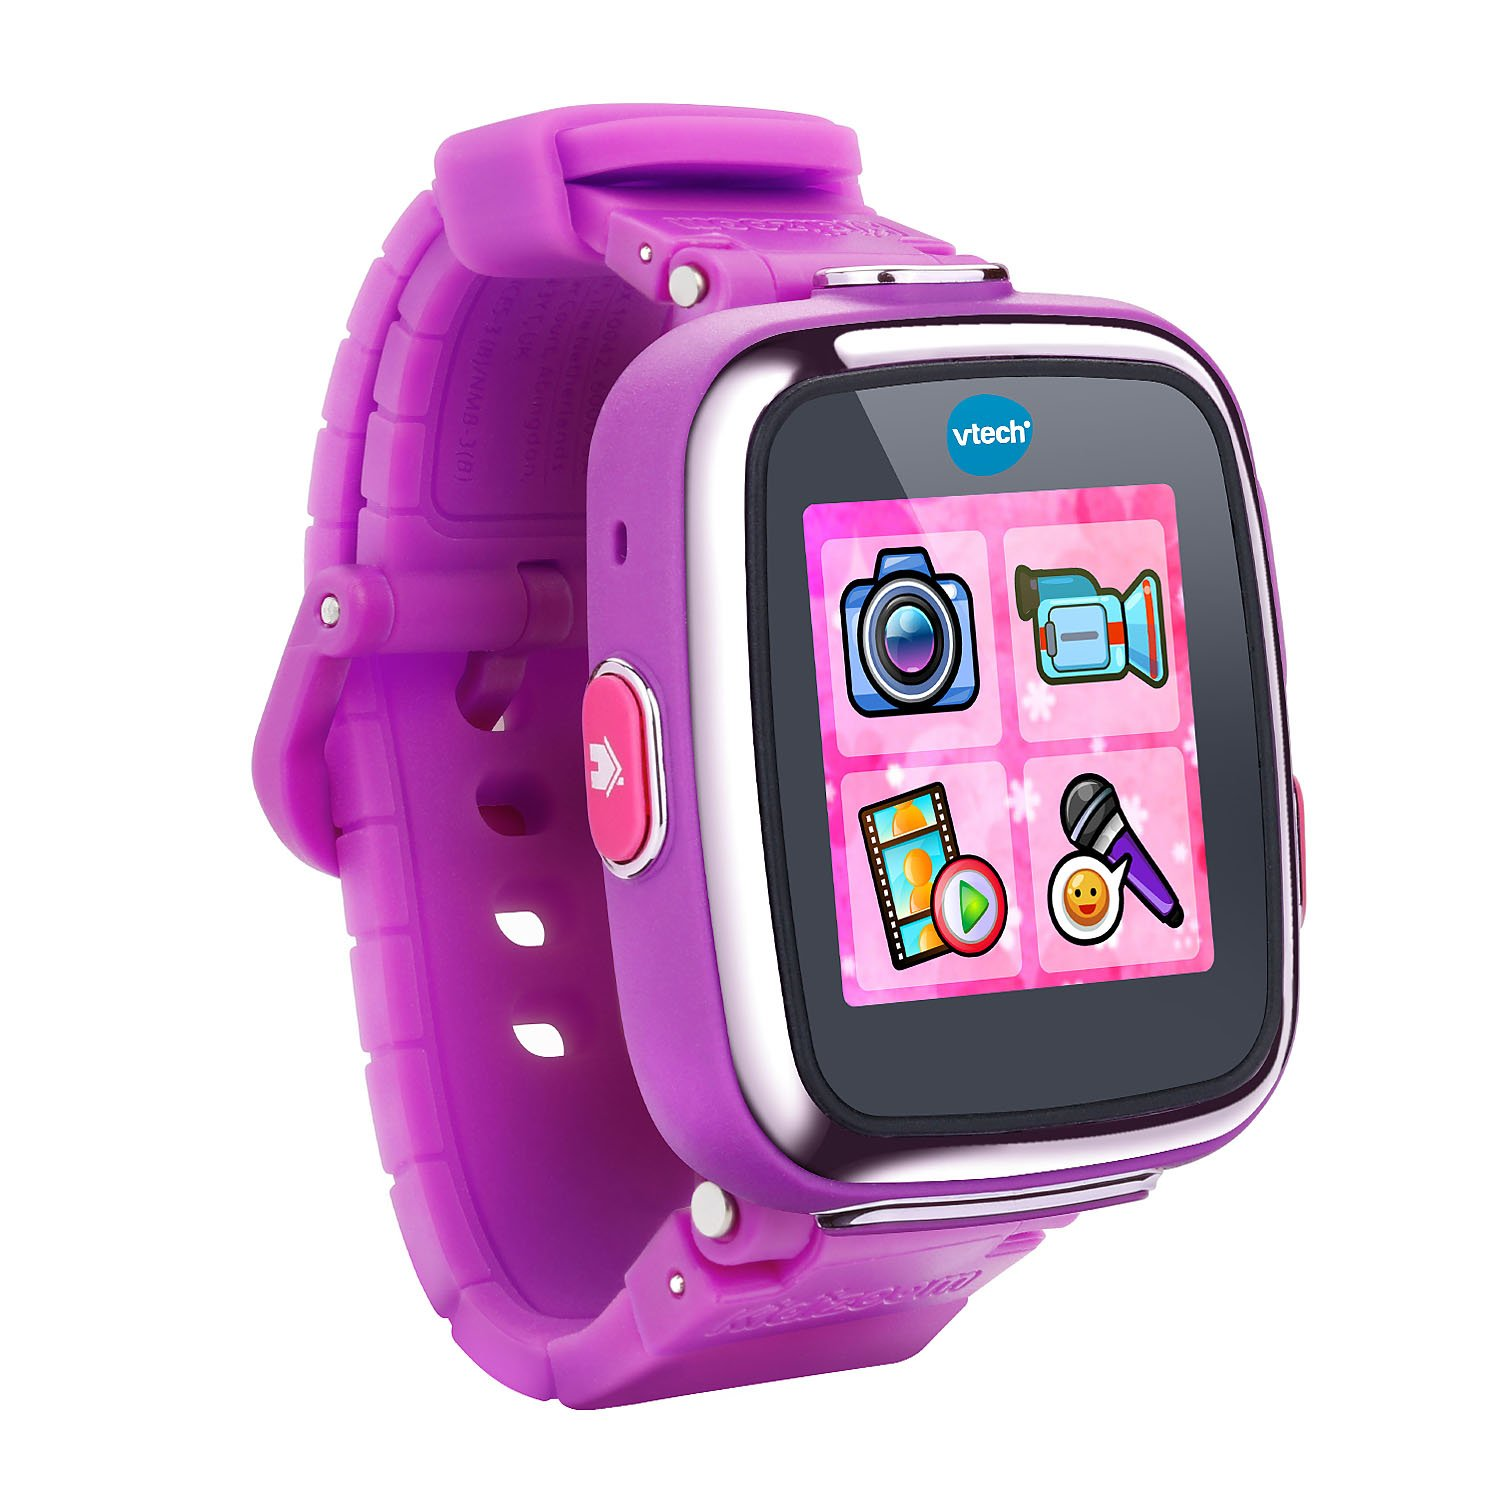 VTech Kidizoom Smartwatch DX - Purple by VTech